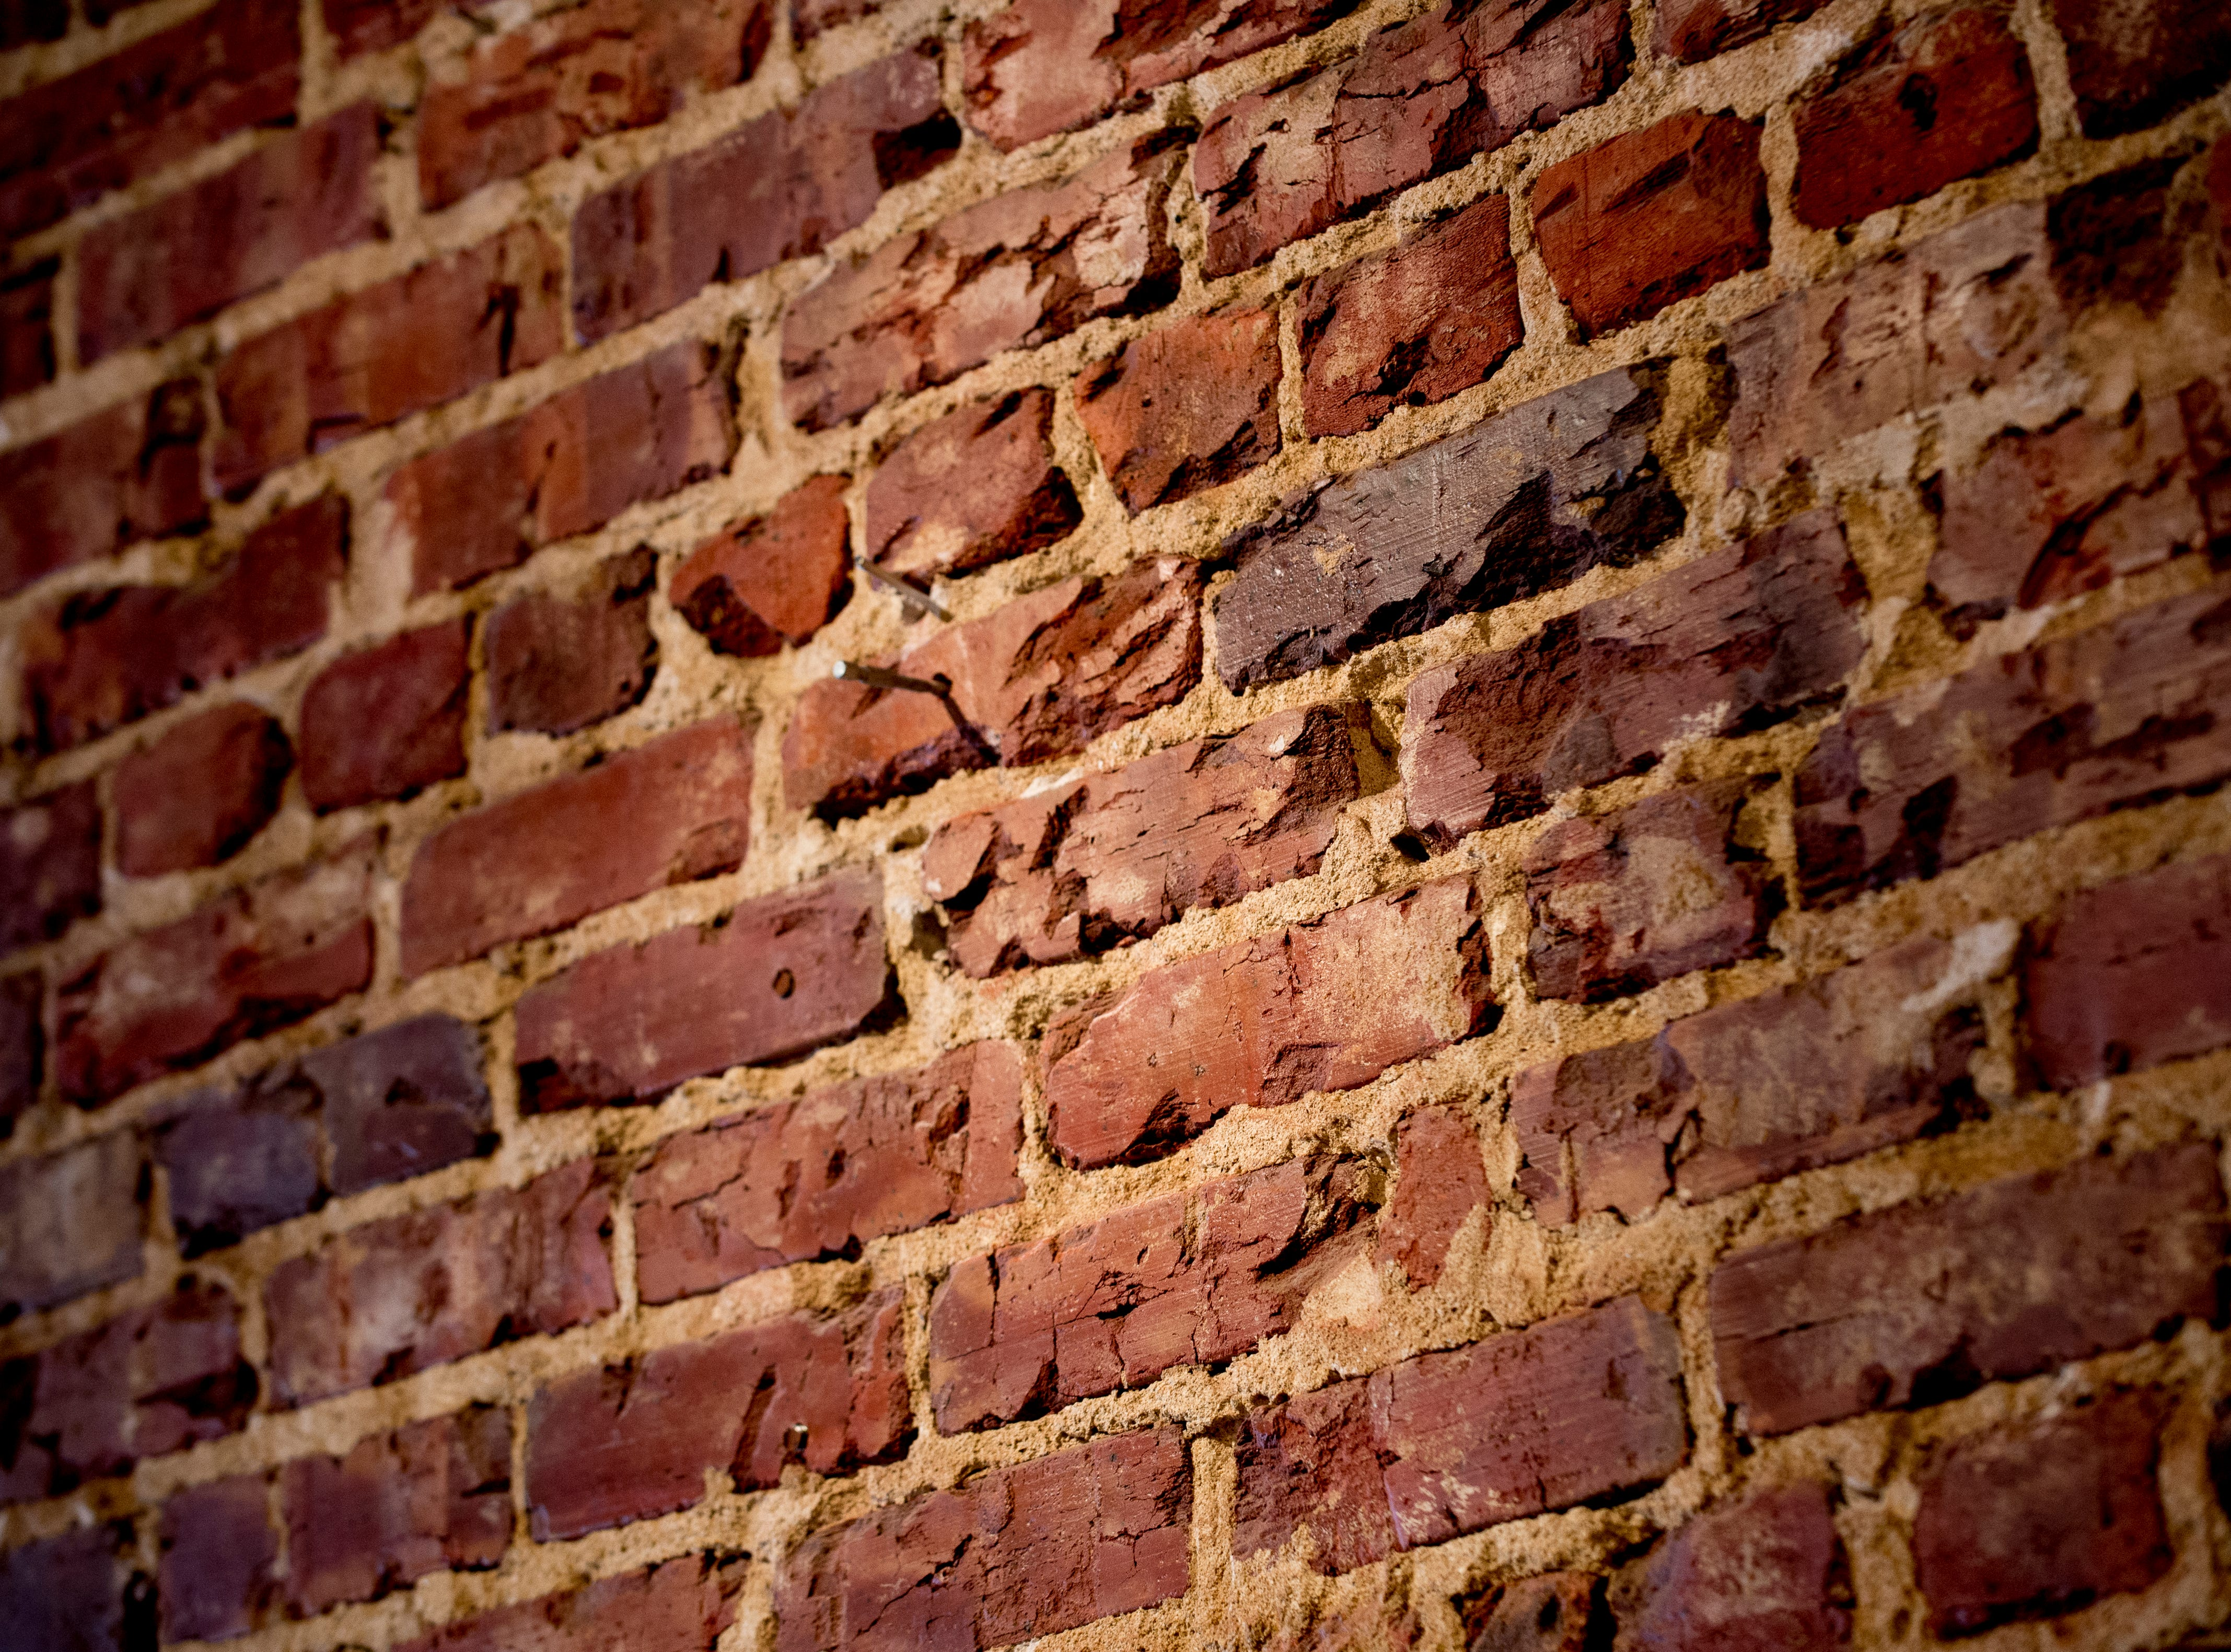 The original brick wall is an attraction of the future Jacks of Knoxville shop at 133c South Gay Street in Knoxville, Tennessee on Friday, January 4, 2019. The shop, which is planned to open in February, will have a strong focus on selling arts and crafts made by local makers.